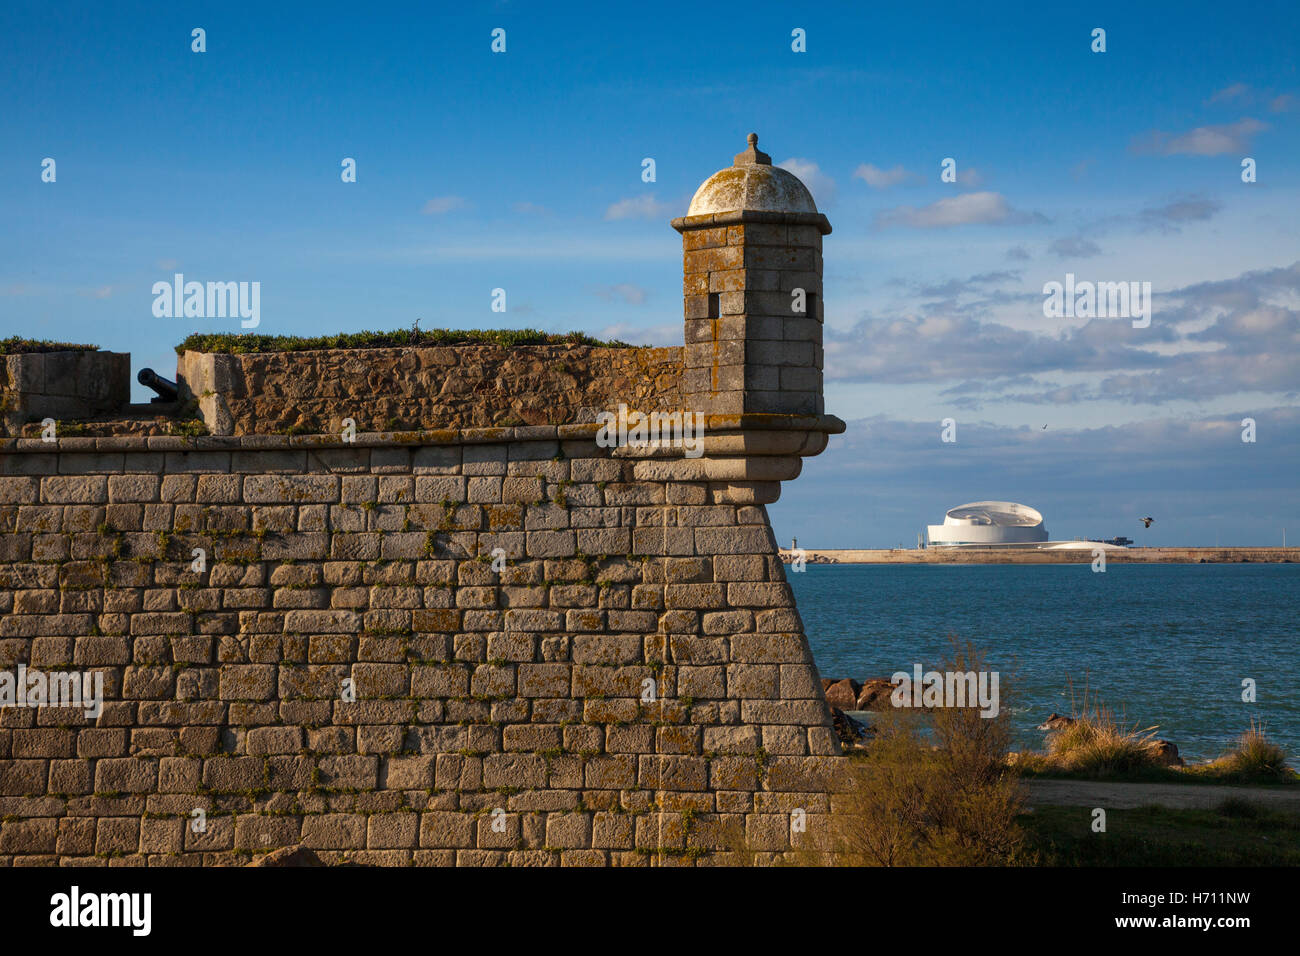 The Forte de Sao Francisco Xavier fort from 1832, Porto, UNESCO site, Portugal, Europe Stock Photo